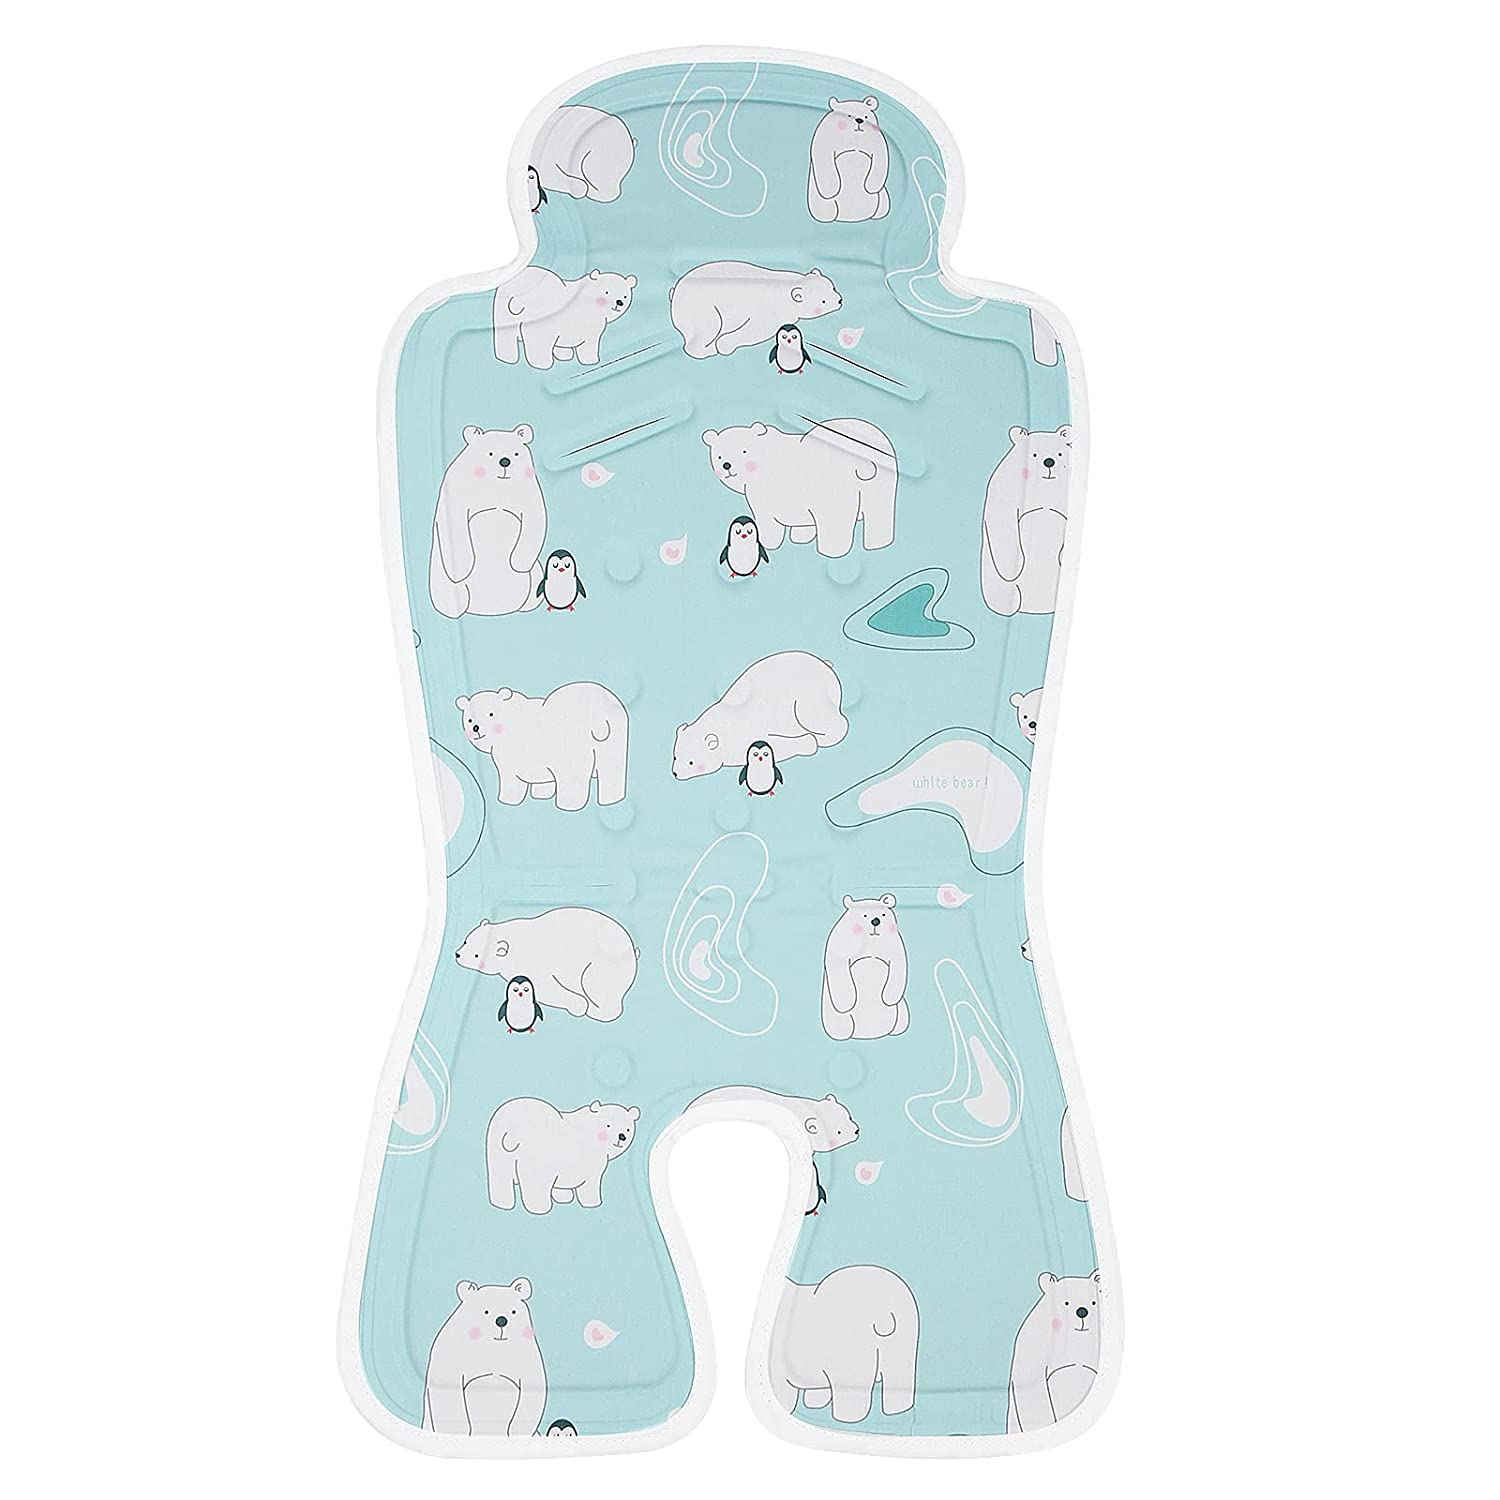 Stroller Gel ice pad Keeps Baby Cool for a Summer, Suitable for 0-36 Months, Non-Slip, Breathable, Washable, Blue Classic.